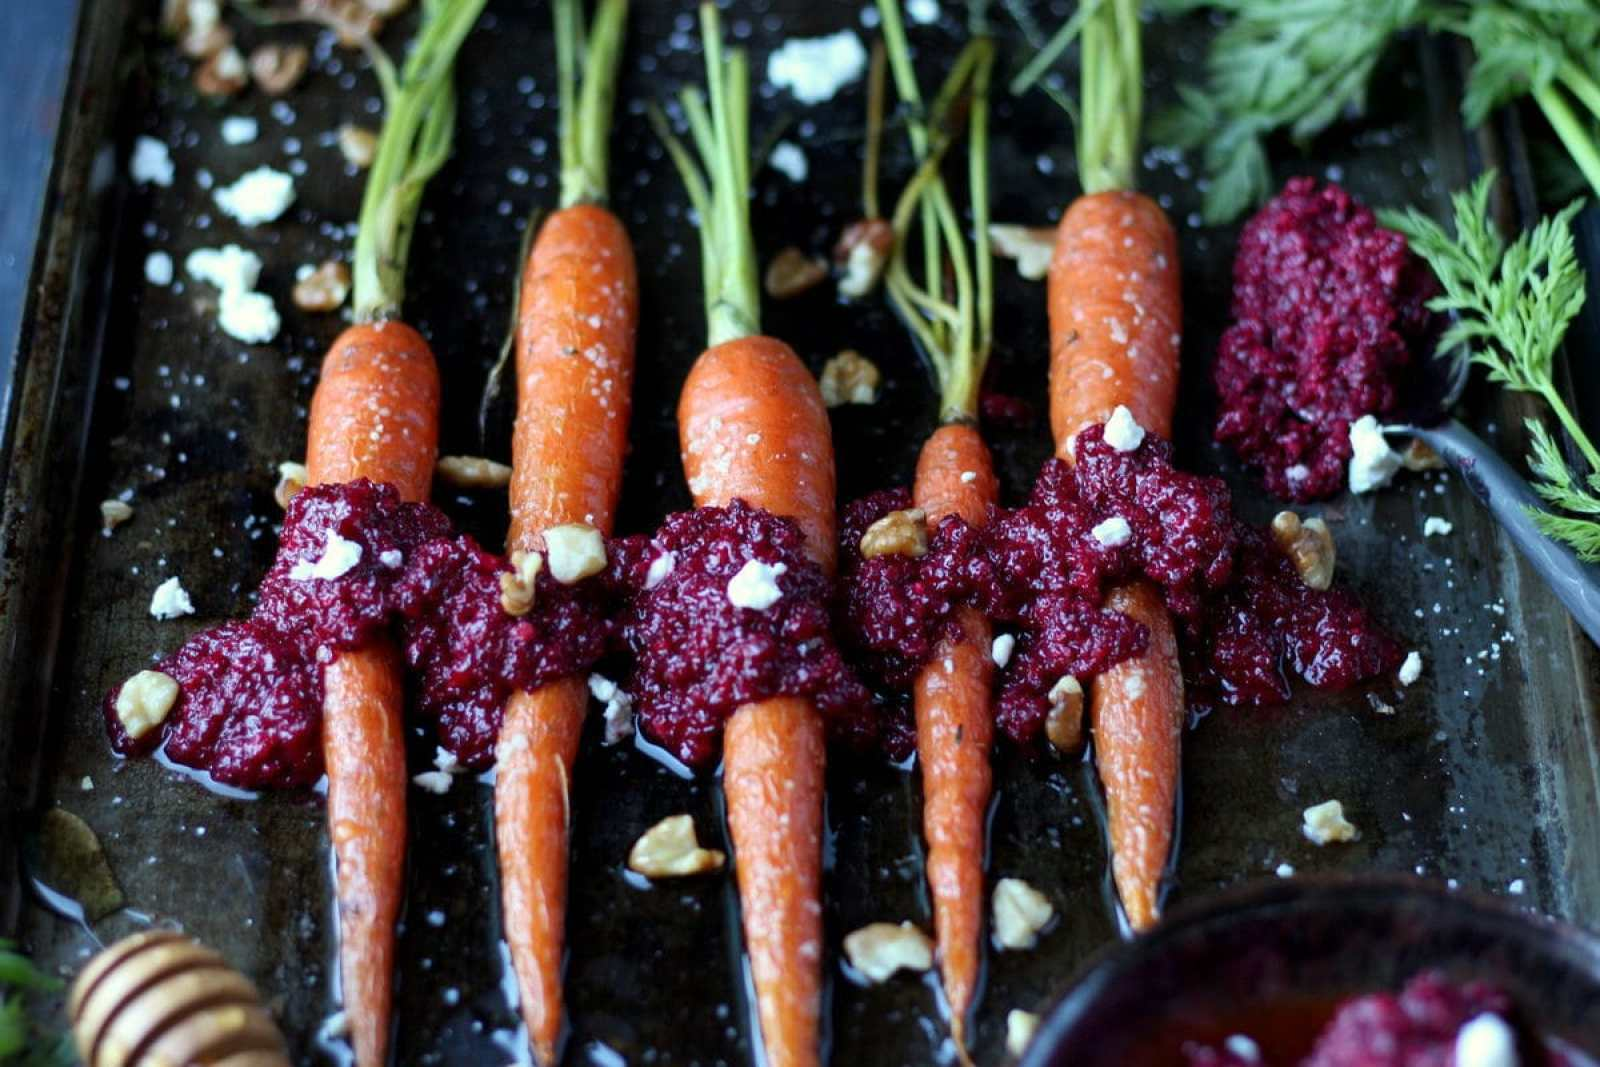 Whole Baked Carrots + Roasted Beet Pesto with Walnuts and Goat Cheese - perfect side dish for Thanksgiving or Christmas! thewoodenskillet.com #foodphotography #foodstyling